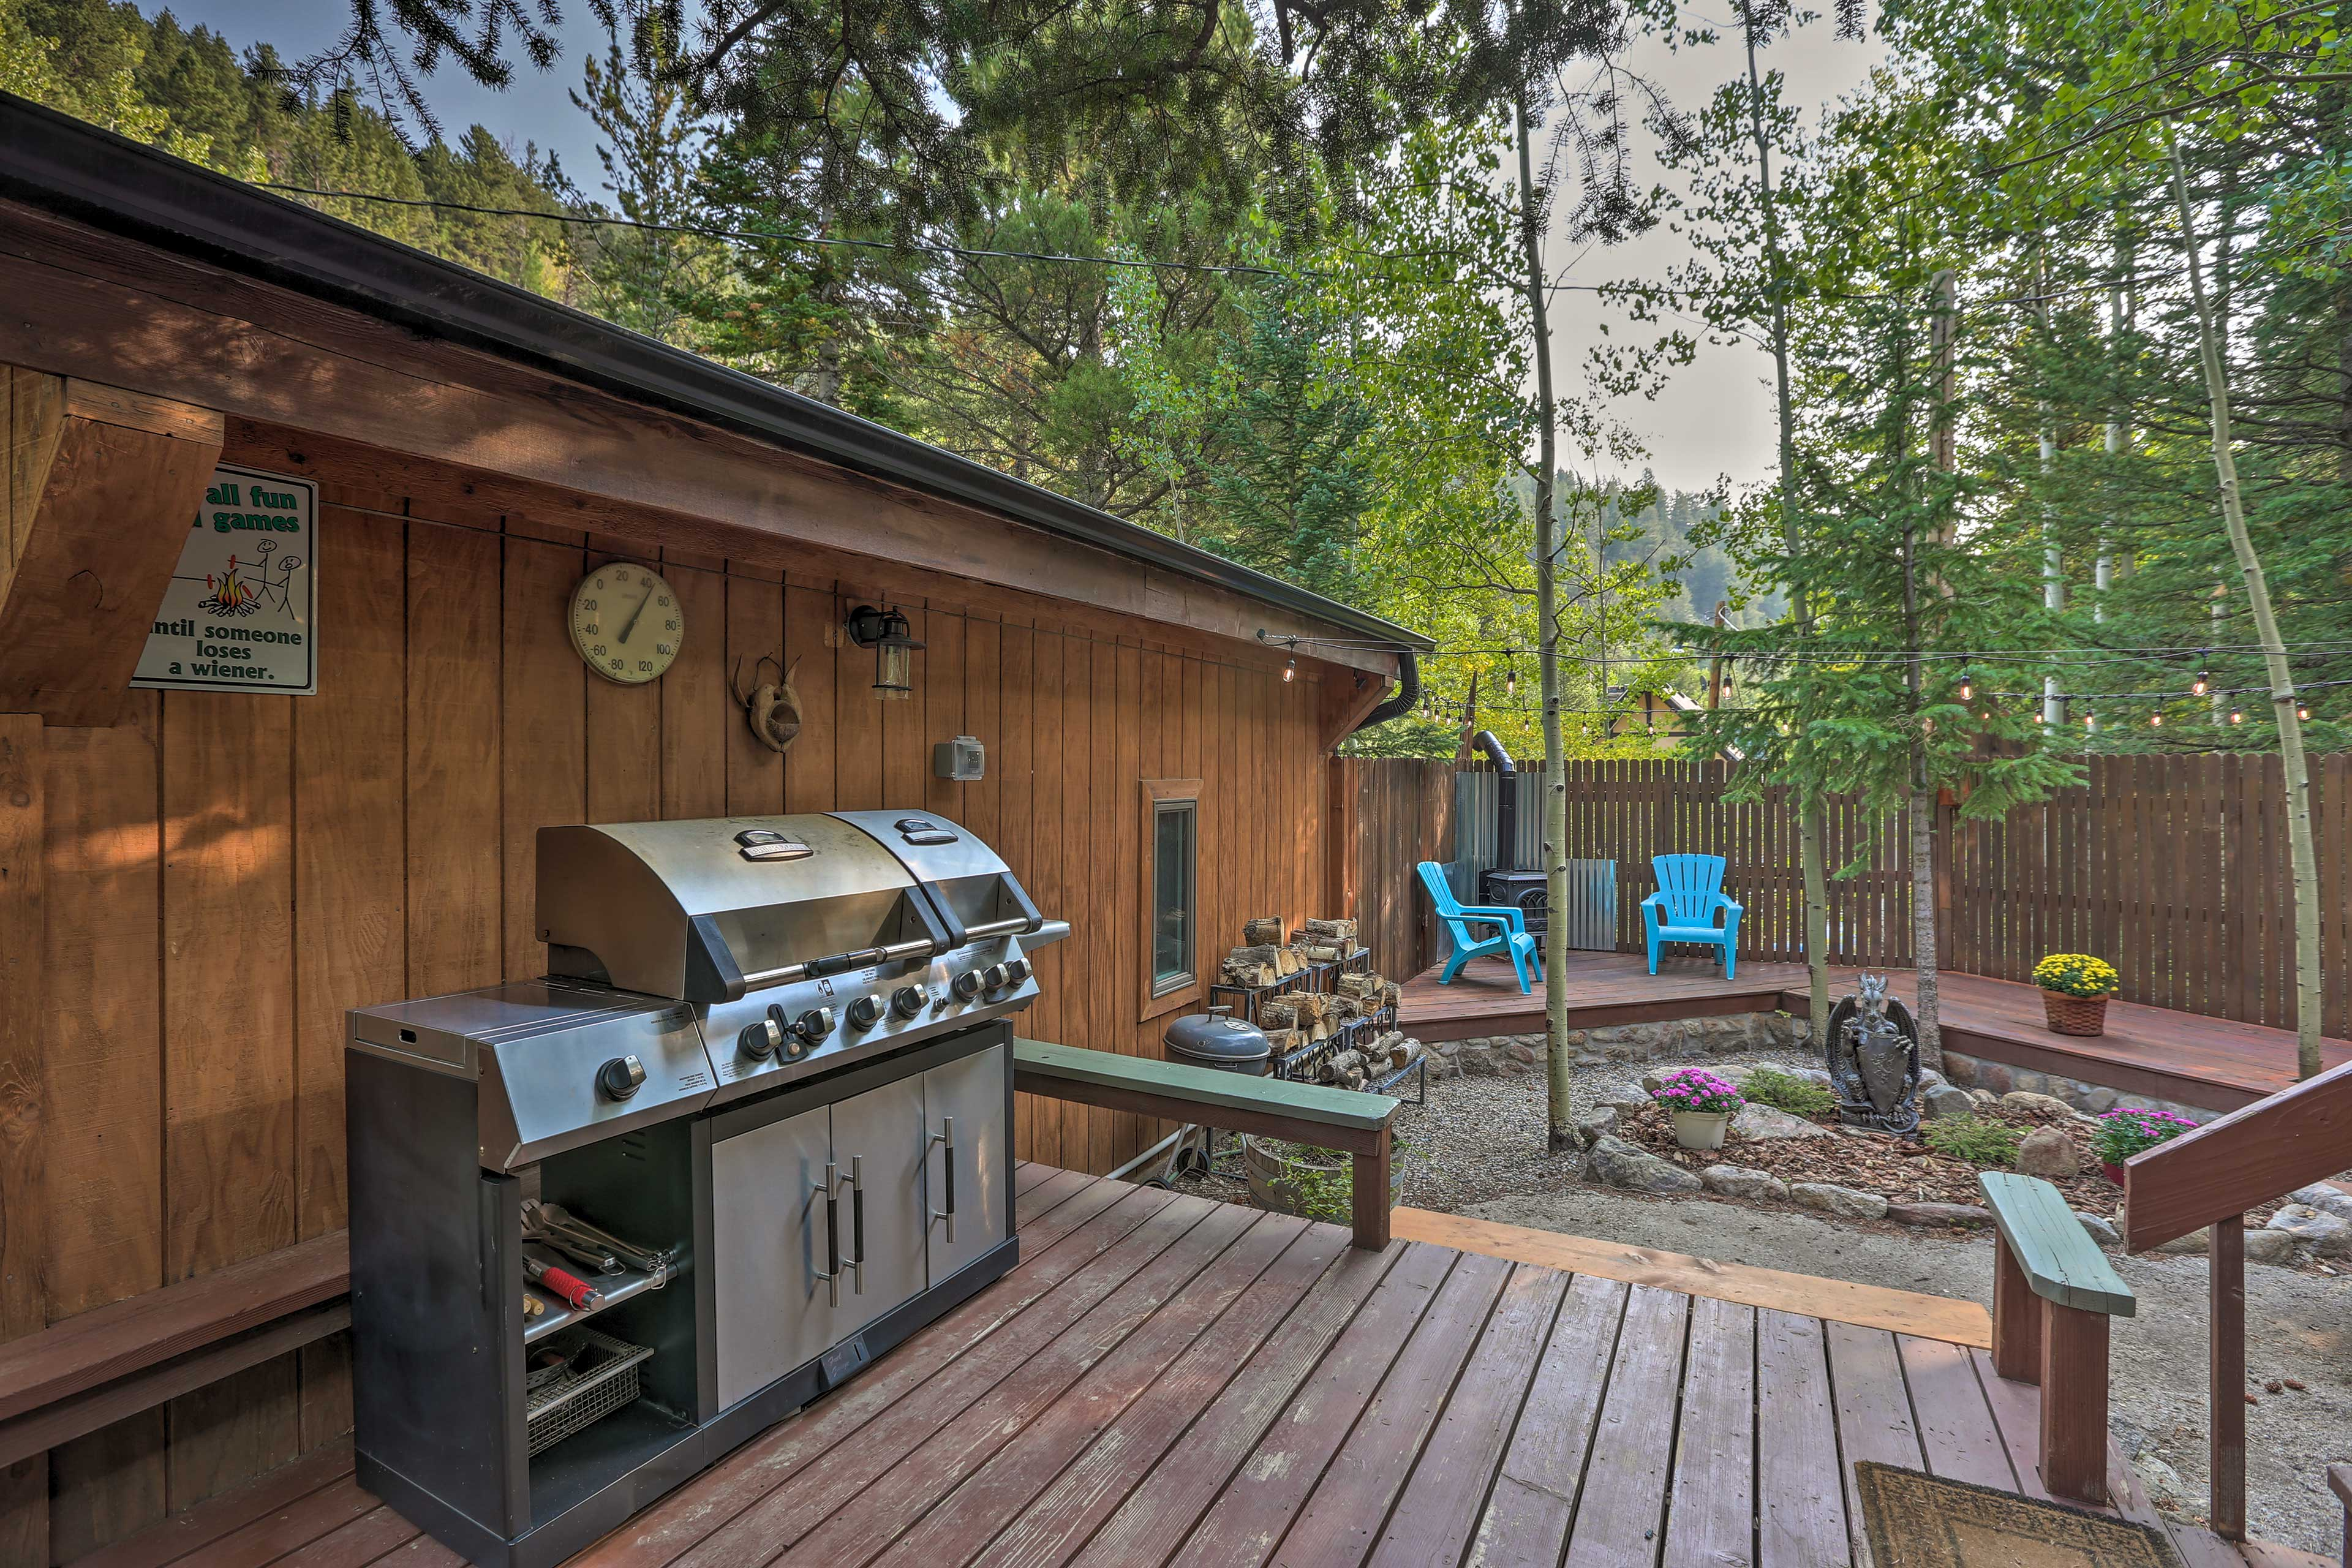 The cabin offers 2 bedrooms, 1 bath and 2 futons.